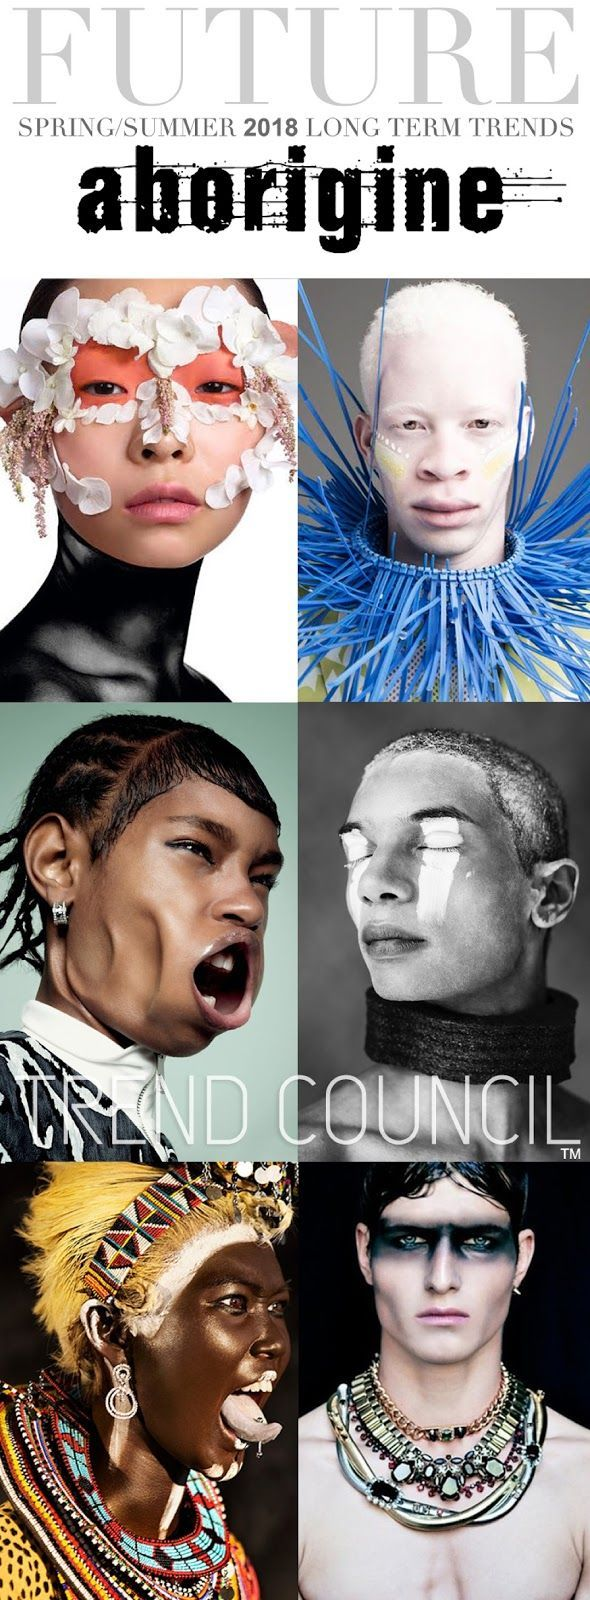 Trend Councilis a fashion trend forecasting company who deliversexpert analysis and design inspirations. Their team provides a great wealth of consulting services for all your company's design needs